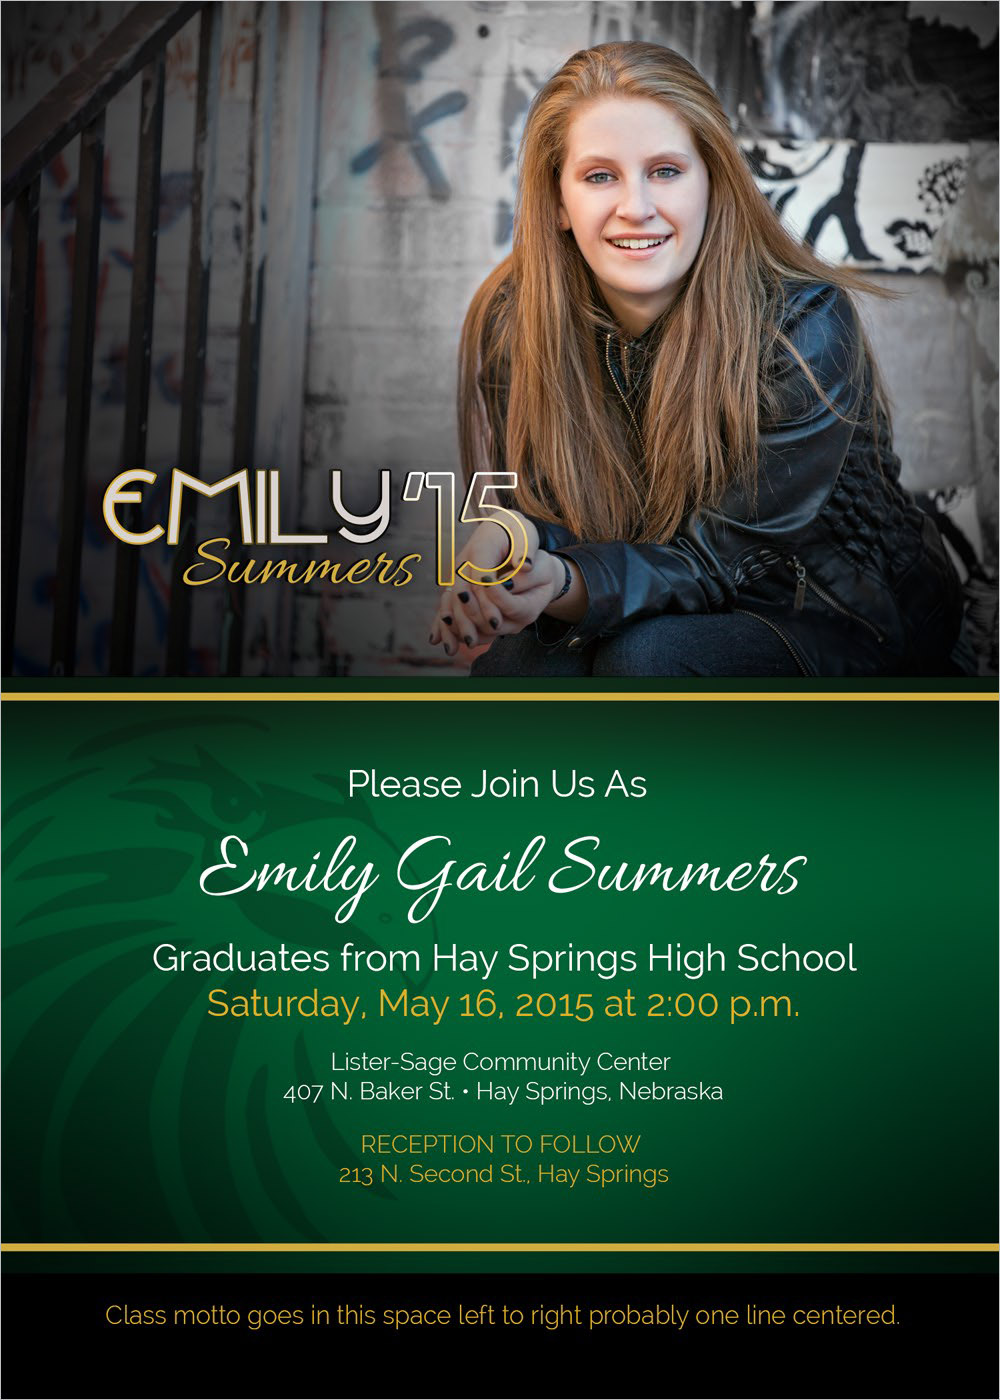 Summers Graduation Announcement Hay Springs, NE